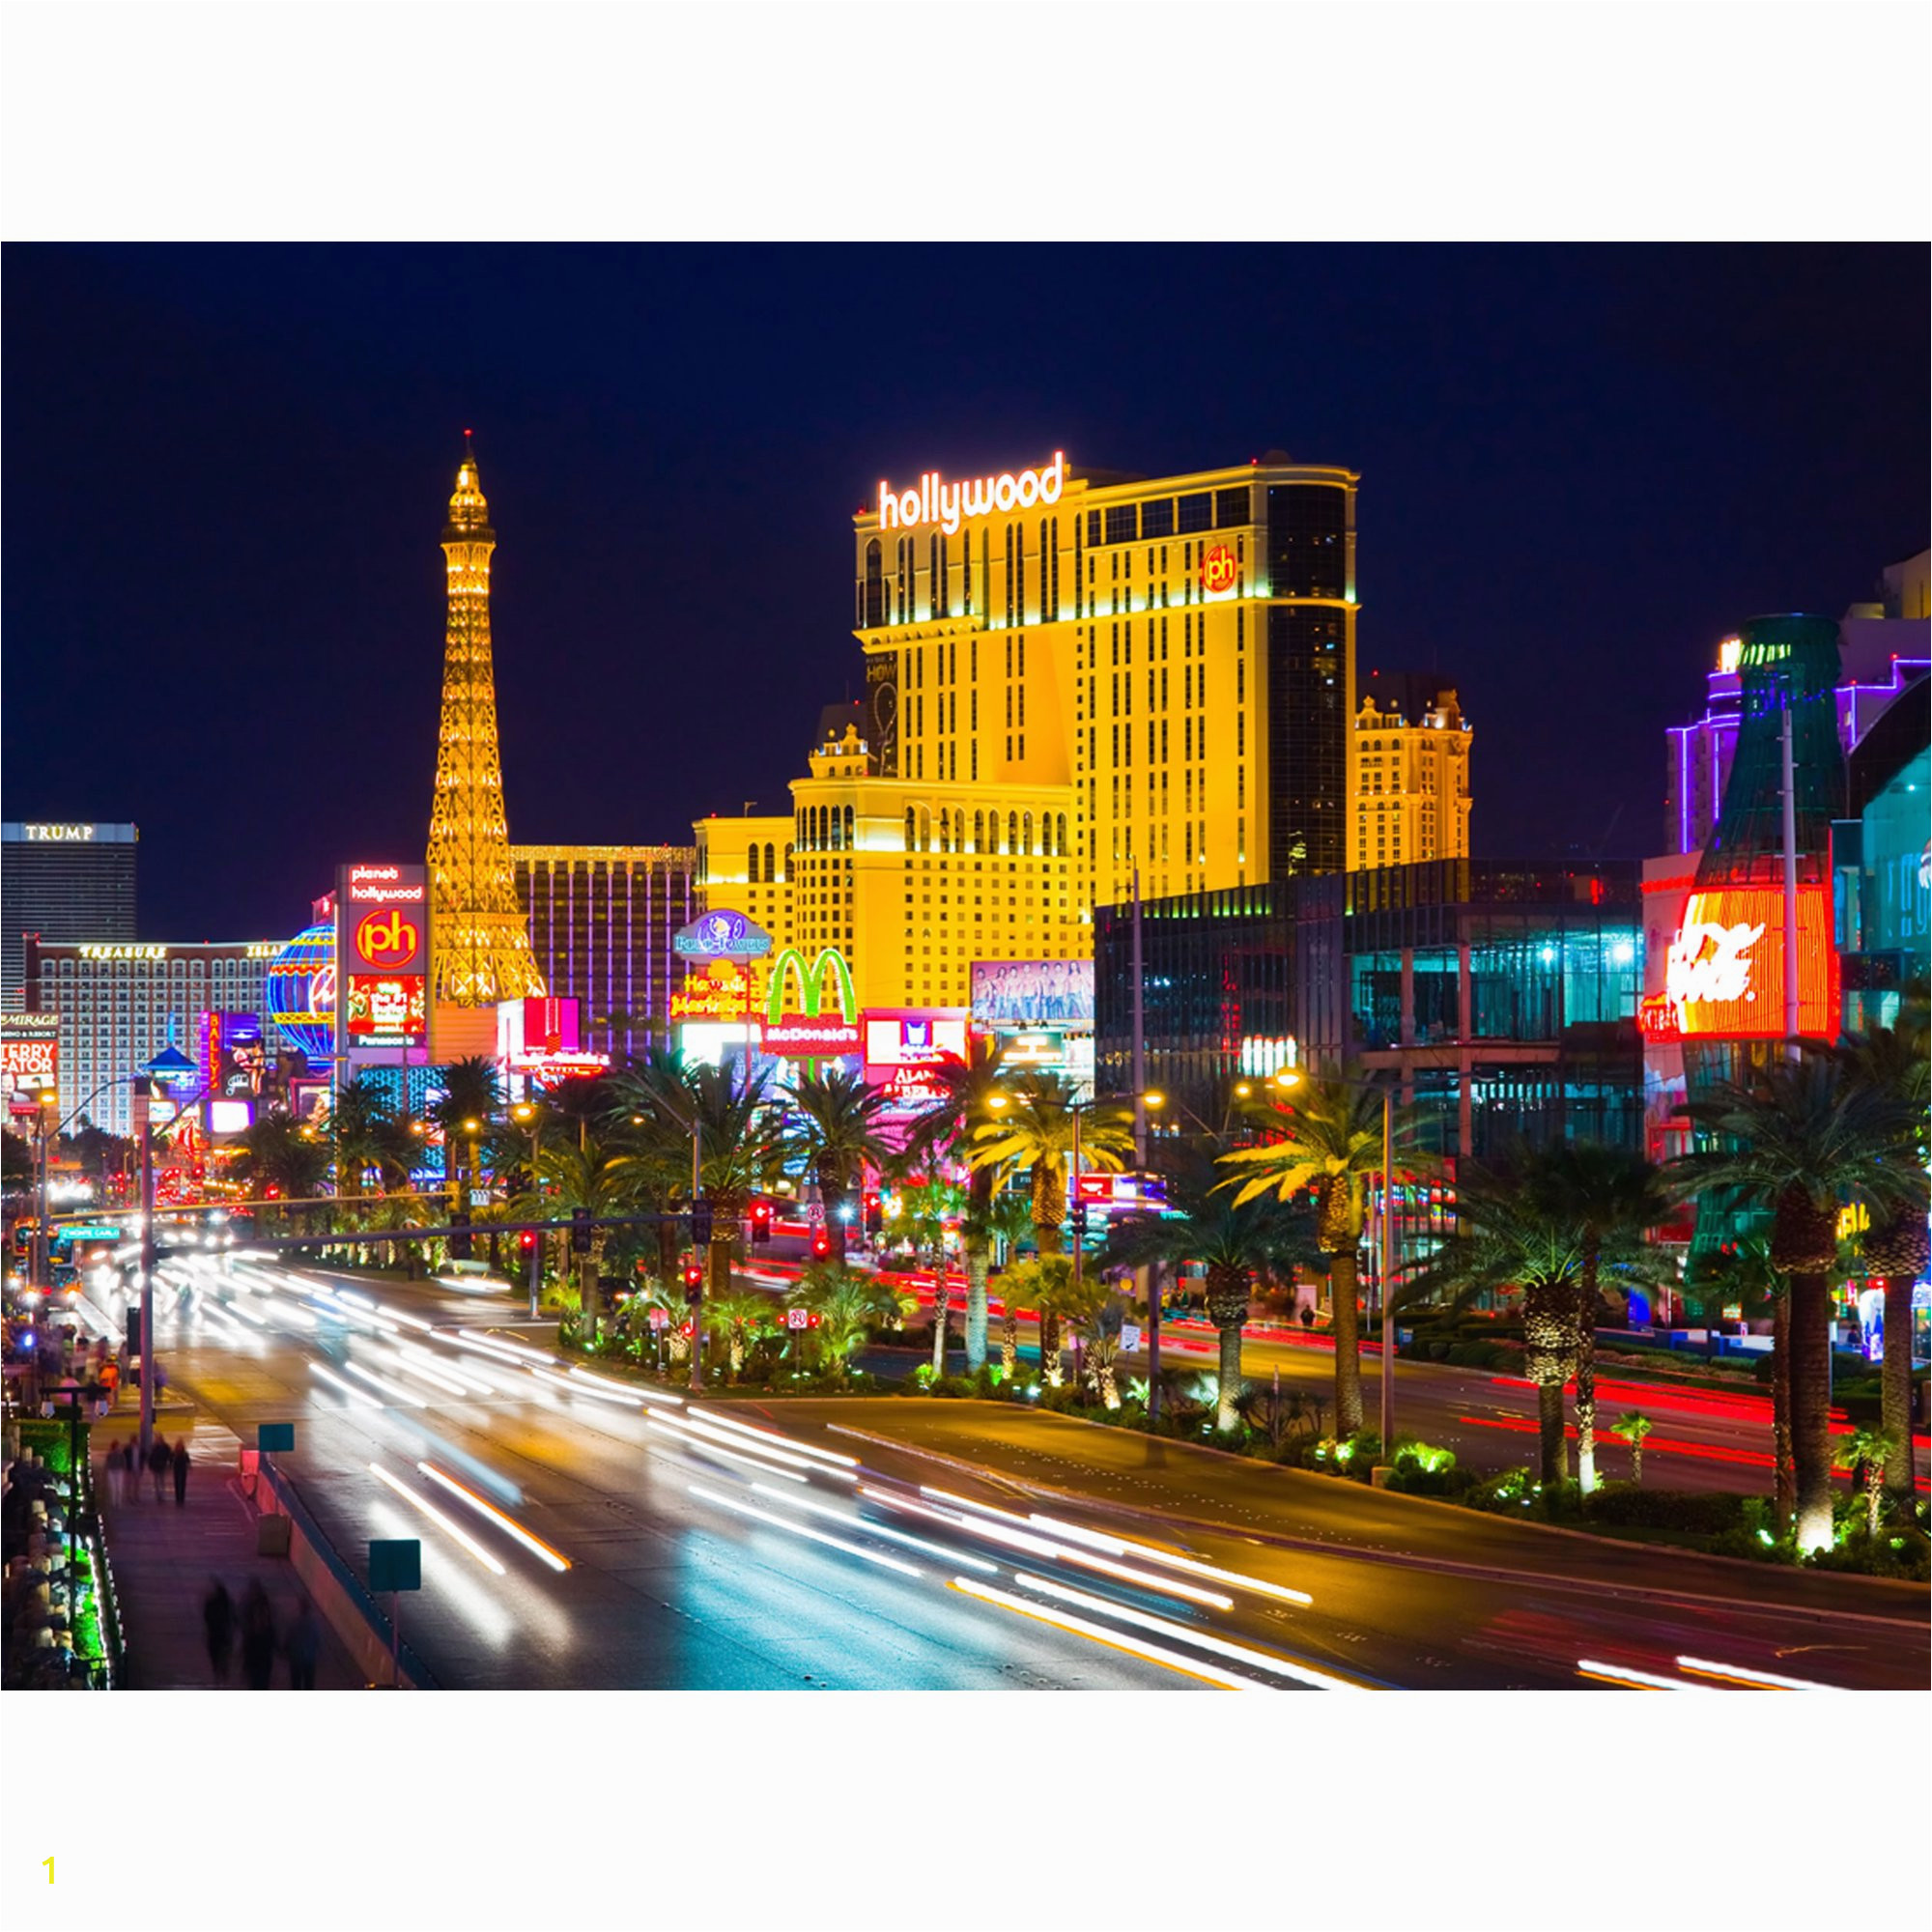 "Las Vegas Strip Wall Mural Las Vegas Strip Casino Hotels at Night Wall Mural Non Woven Wallpaper Made In Europe for Living Room Family Room Bedroom 11 10"" H X 8 10"" V"